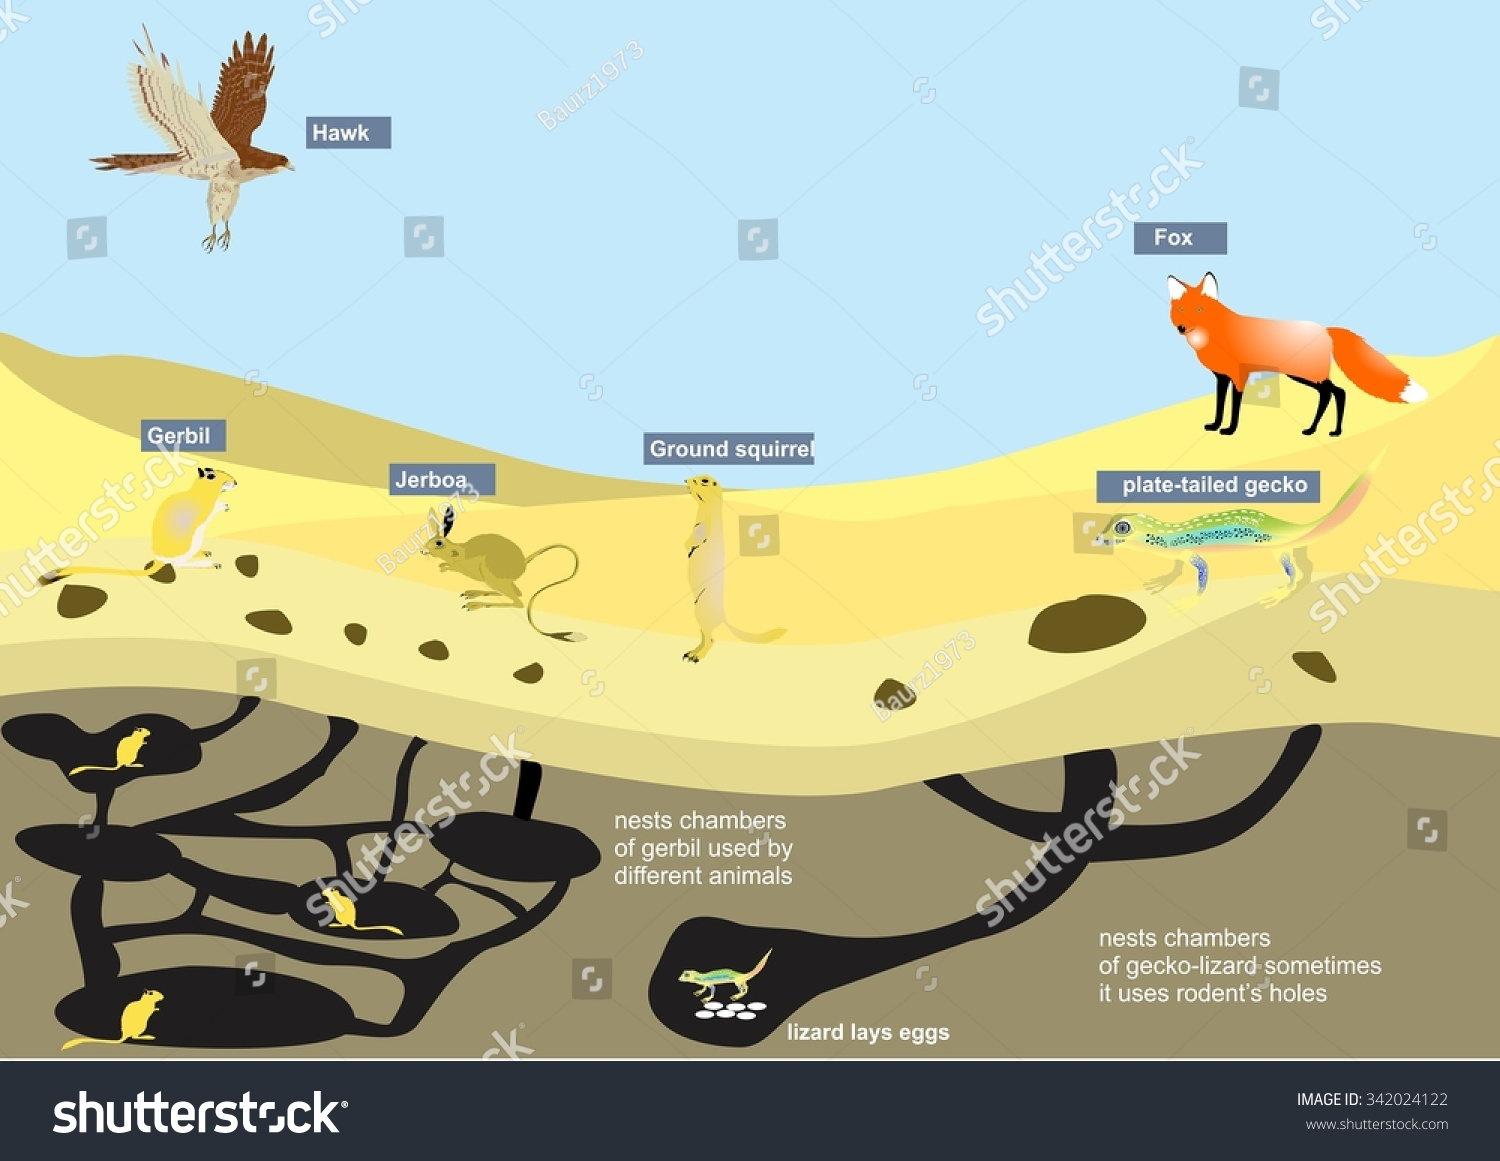 desert hawk diagram 12 lead 480v motor wiring ecosystem illustration some infographic elements stock vector with fox rodents lizard